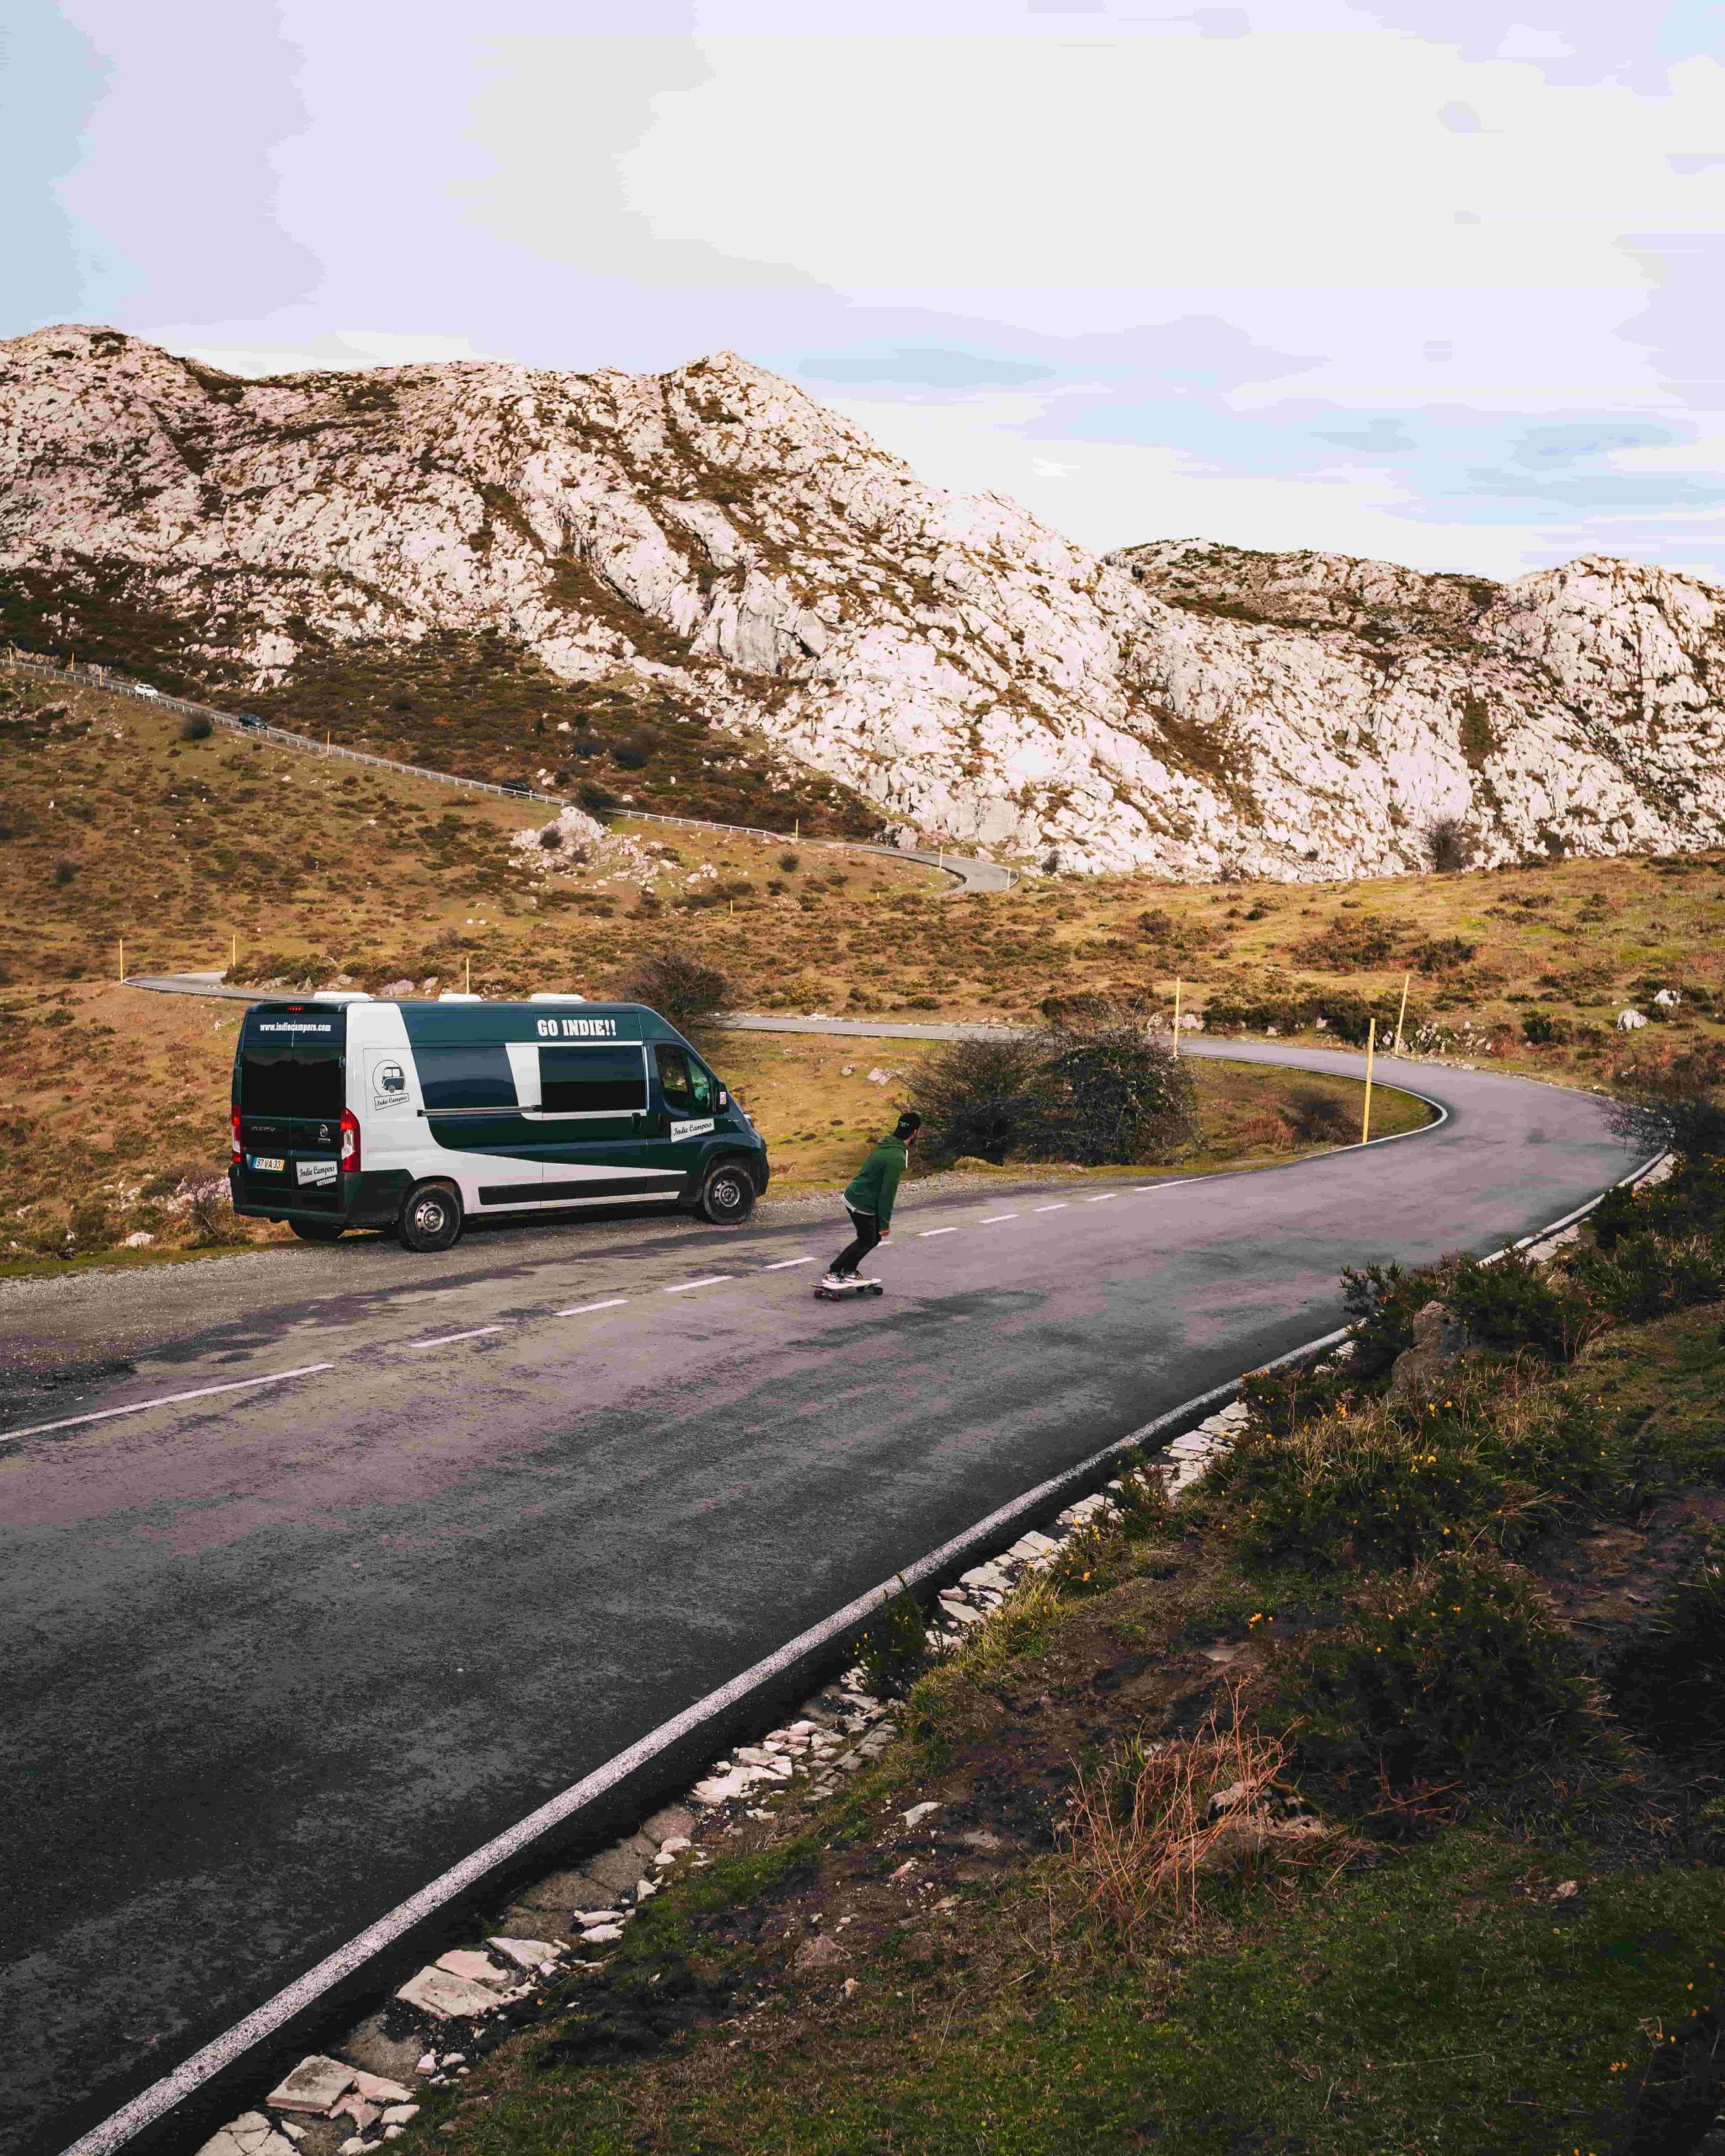 Domestic campervan hire booming in Europe, UK to follow